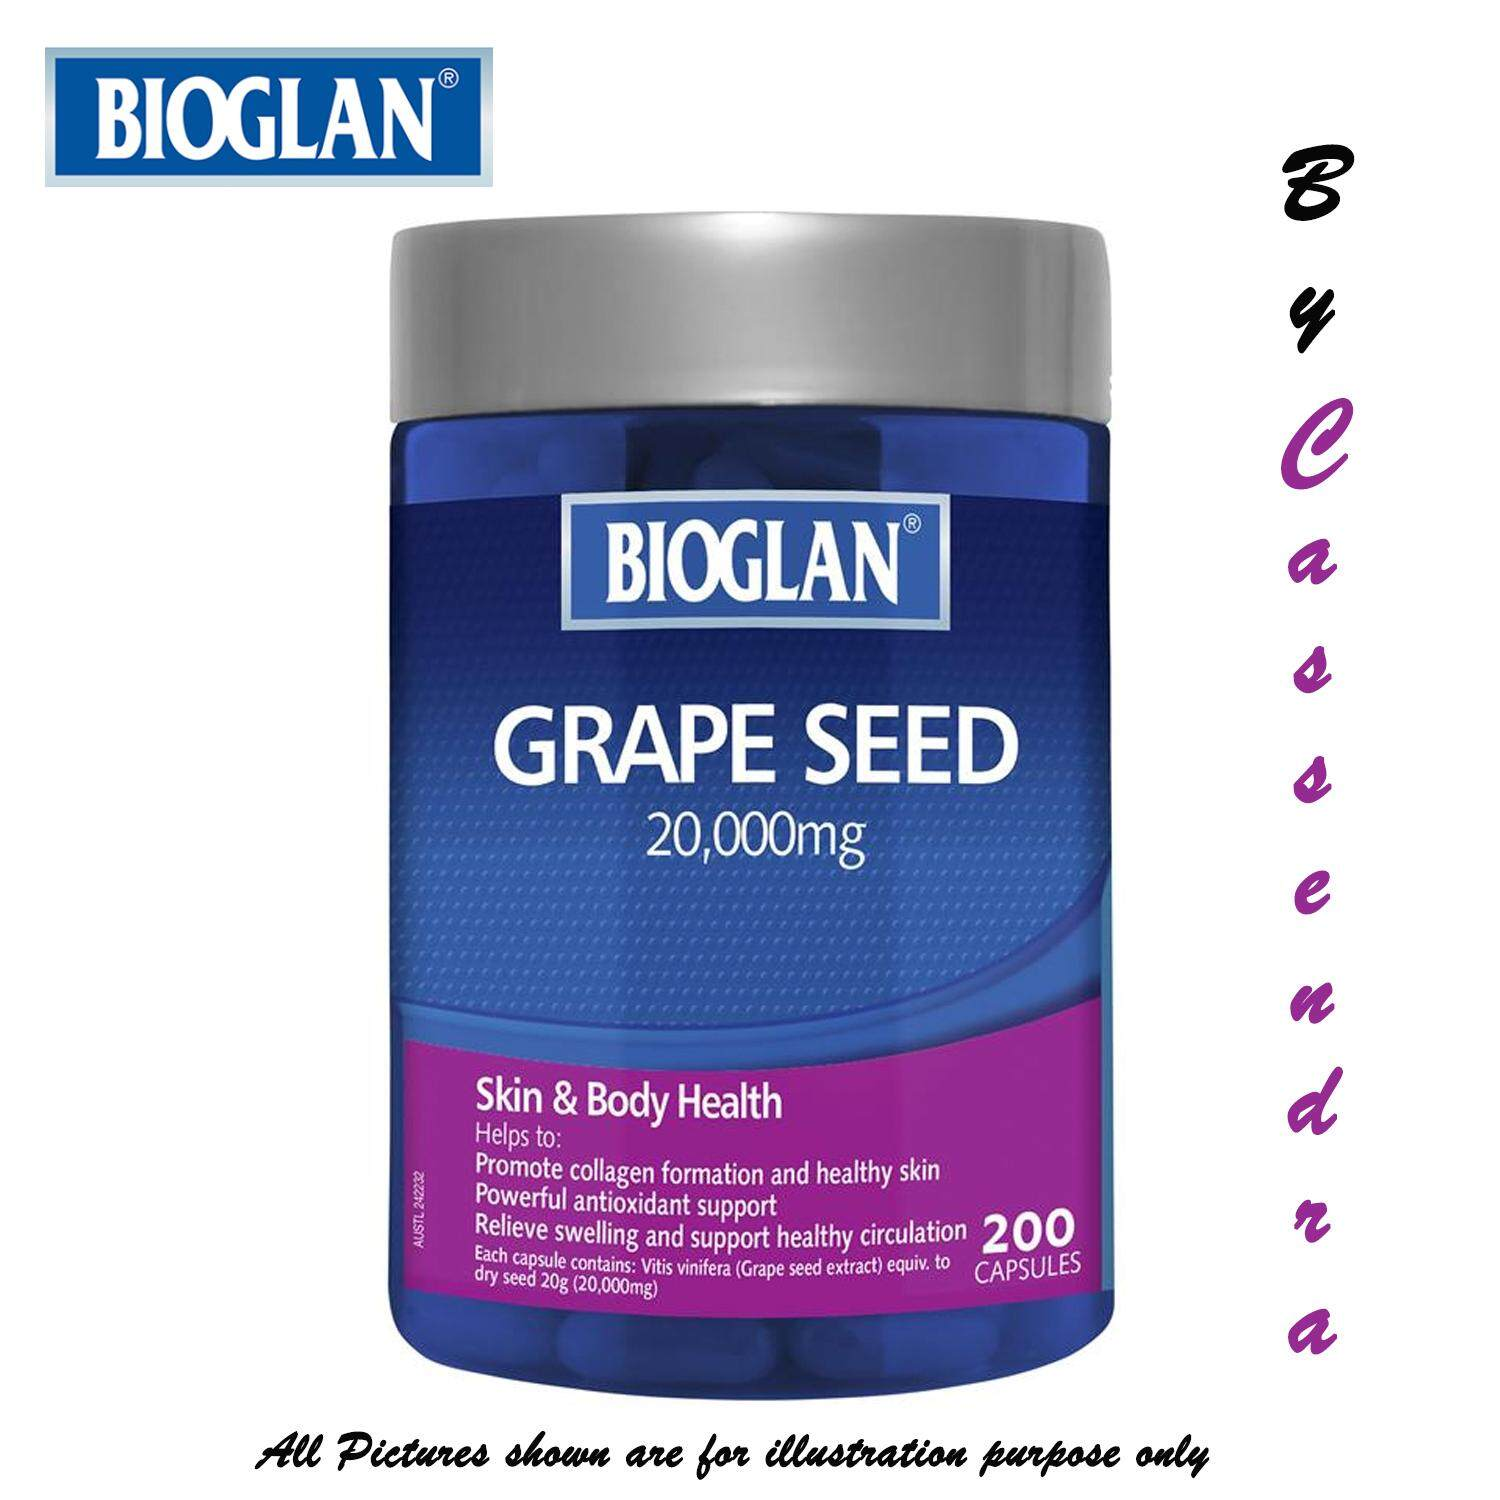 ... Fish Oil 2000mg 200 Capsules. Omega Xl 60 Soft Gel Capsules price in Singapore Source · 100 from AUS BIOGLAN Super Strength Grape Seed 20000mg 200 Caps